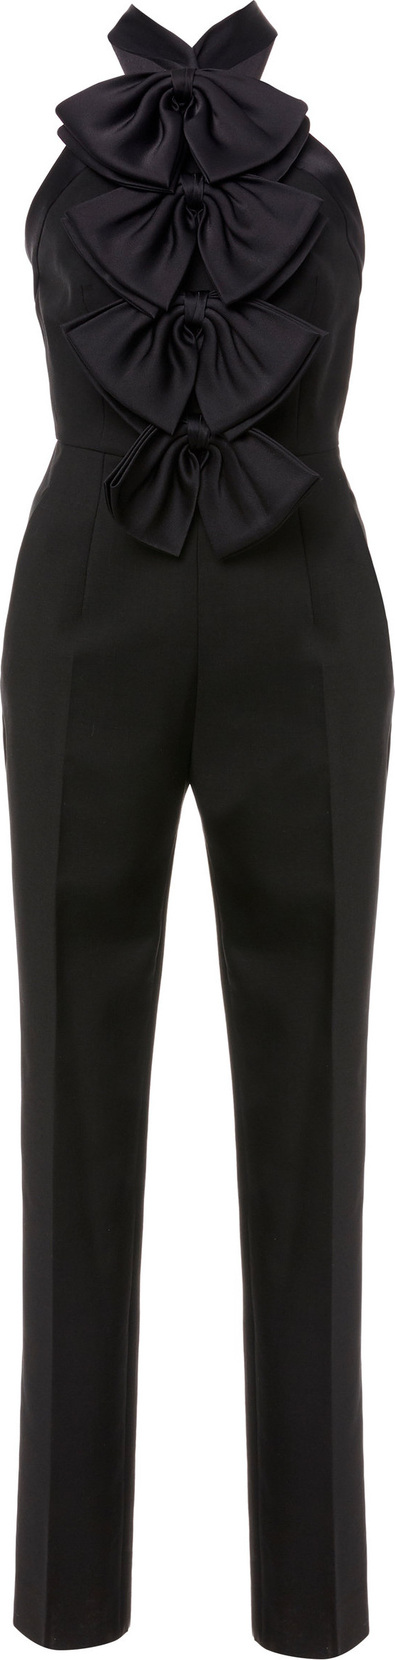 Givenchy Bow-Embellished Mohair and Wool-Blend Jumpsuit